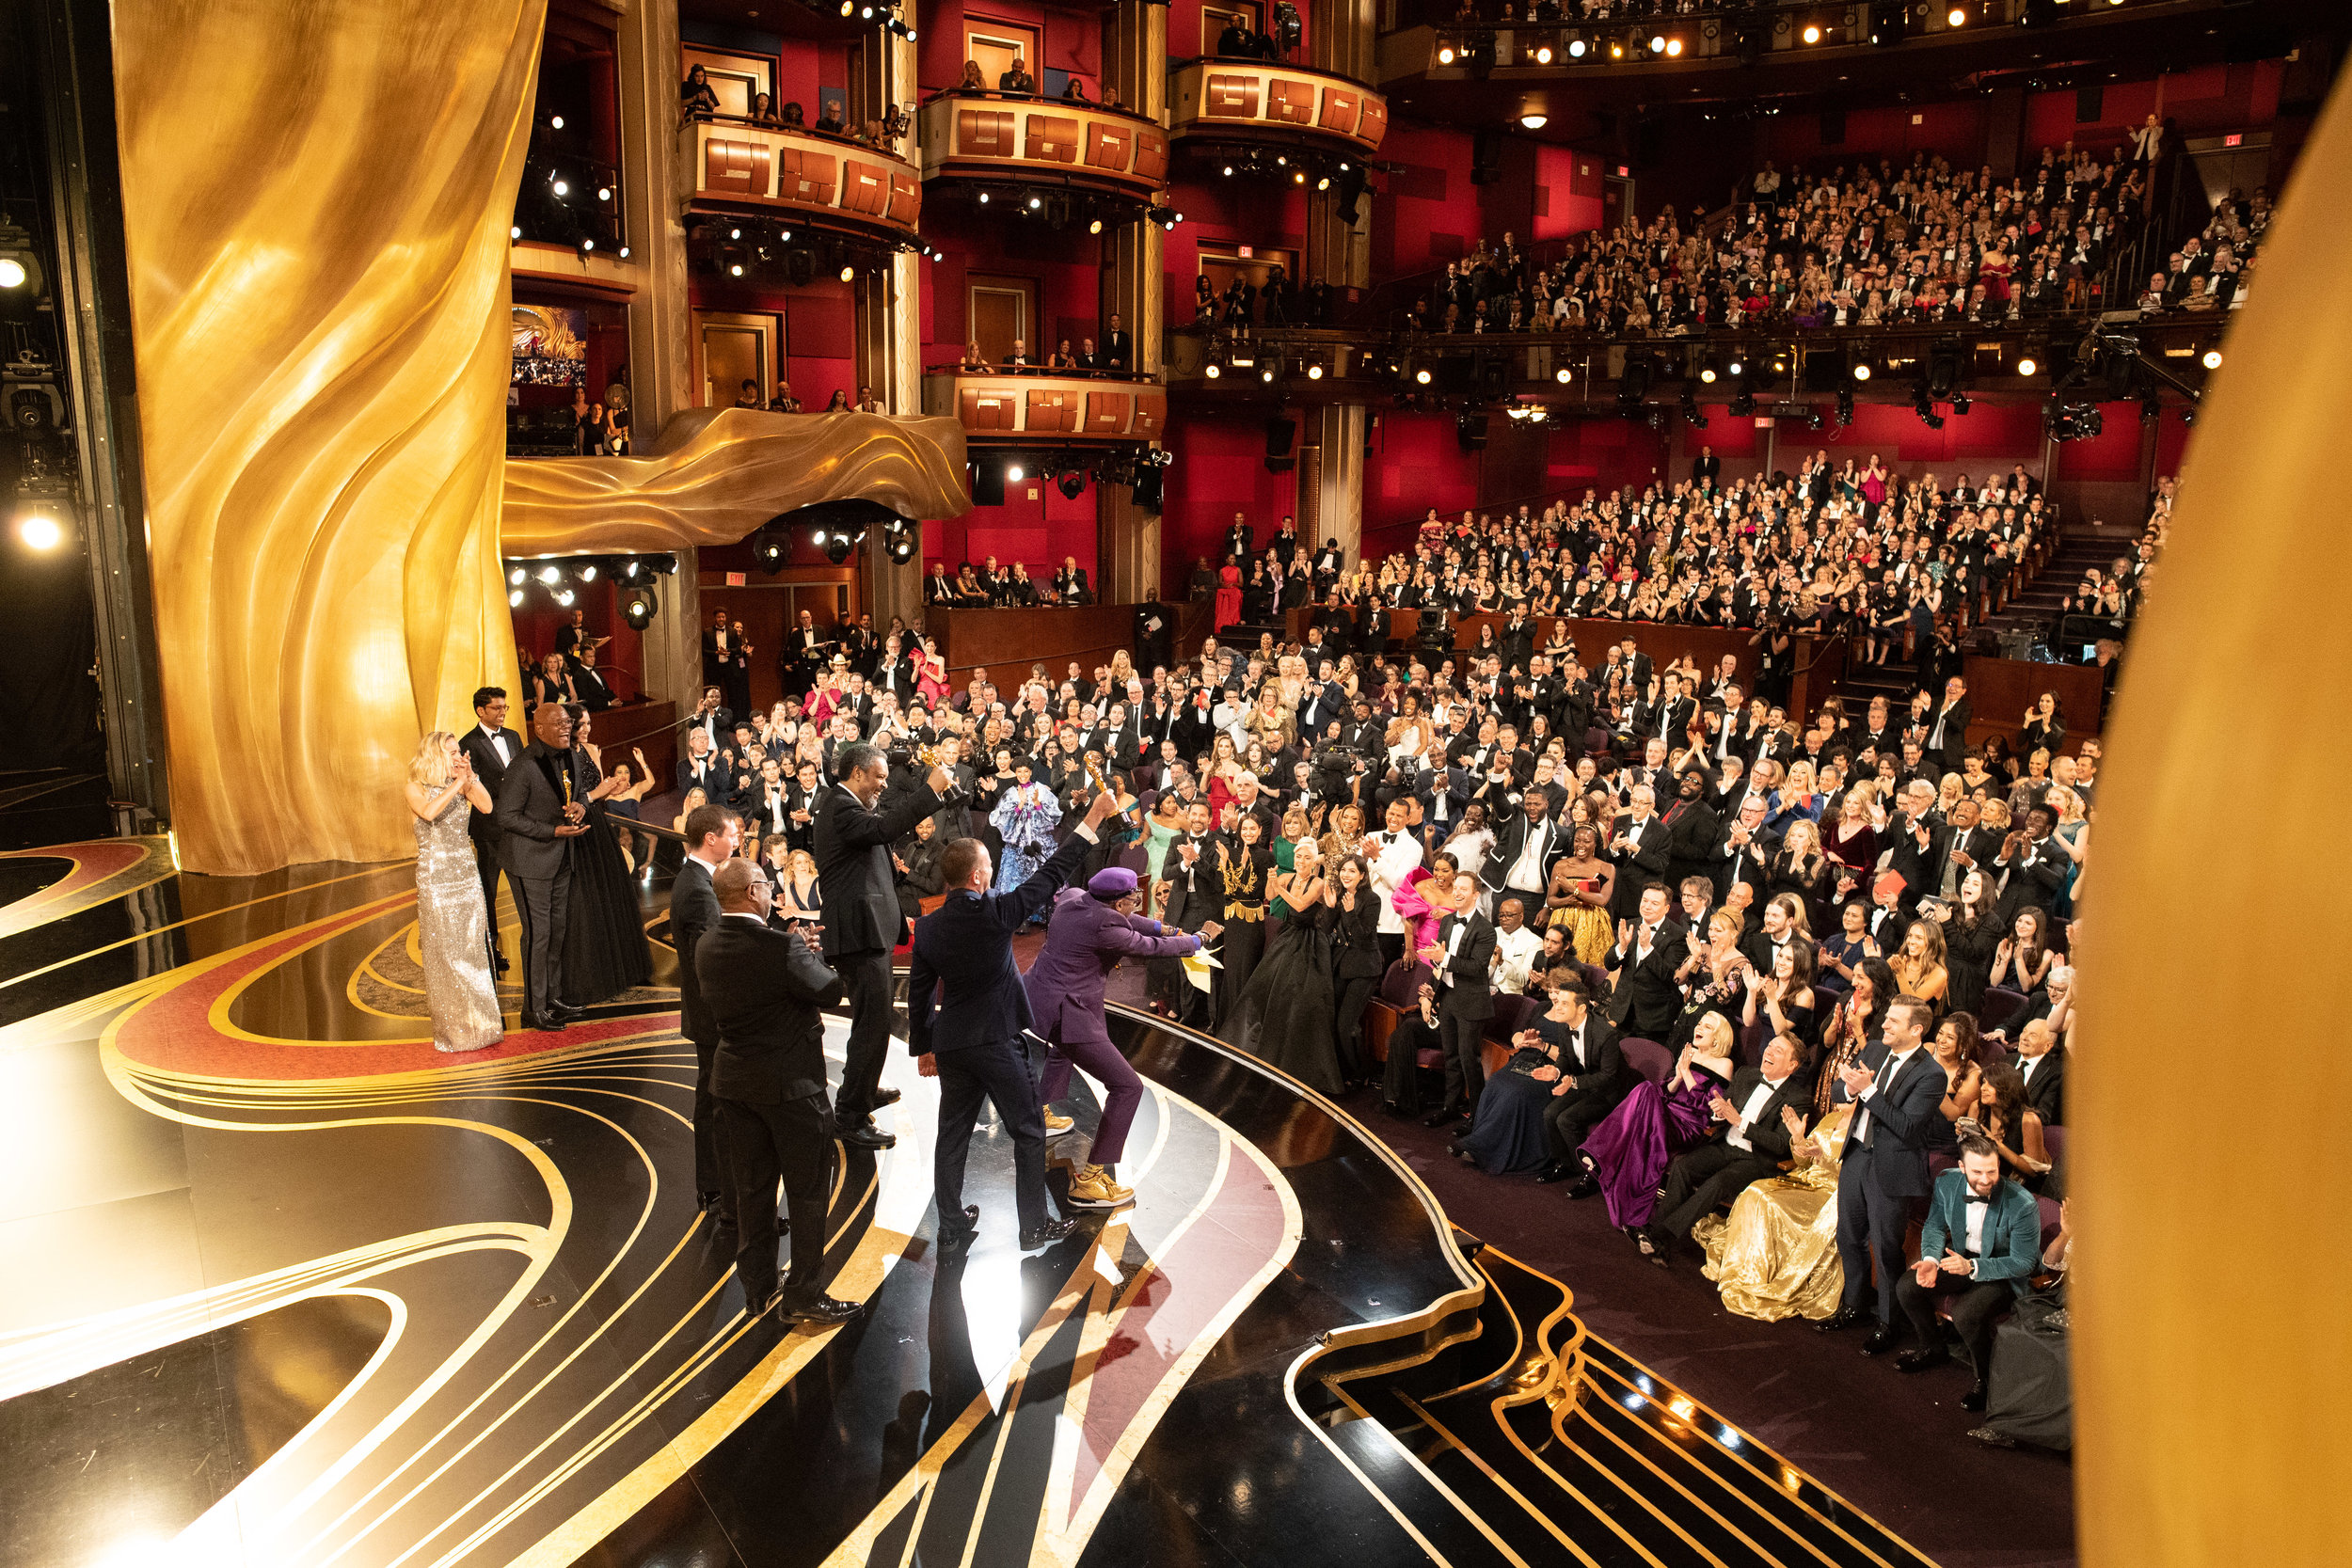 Rabinowitz, Wachtel, Lee and Kevin Willmott accepting their Oscars for Best Adapted Screenplay on stage with presenters Brie Larson and Samuel L Jackson.  Photo courtesy of 91st Oscars® Press Kits.